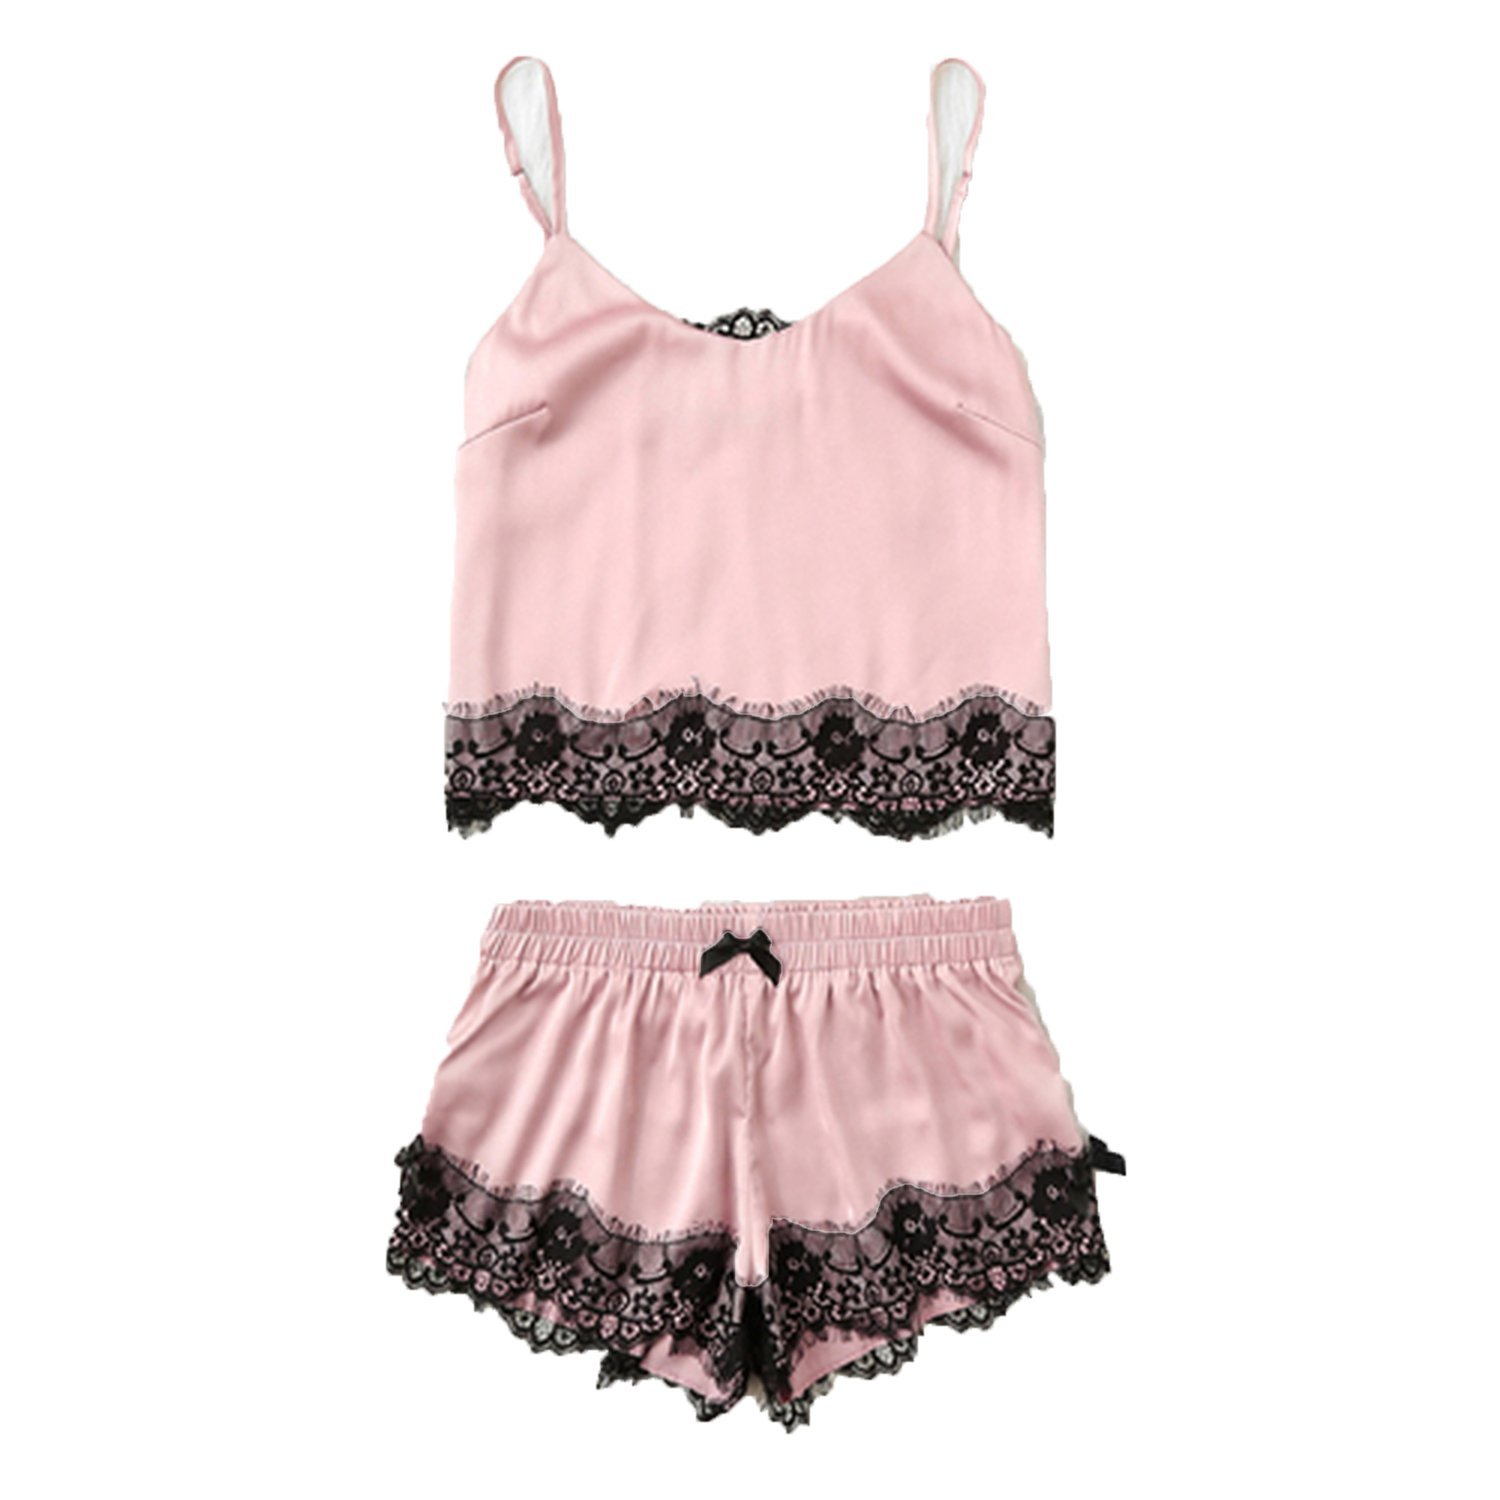 ecbded2b87 Get Quotations · fashion-magic-closet Pink Spaghetti Strap Lace Applique  Satin Cami Top and Shorts Pajama